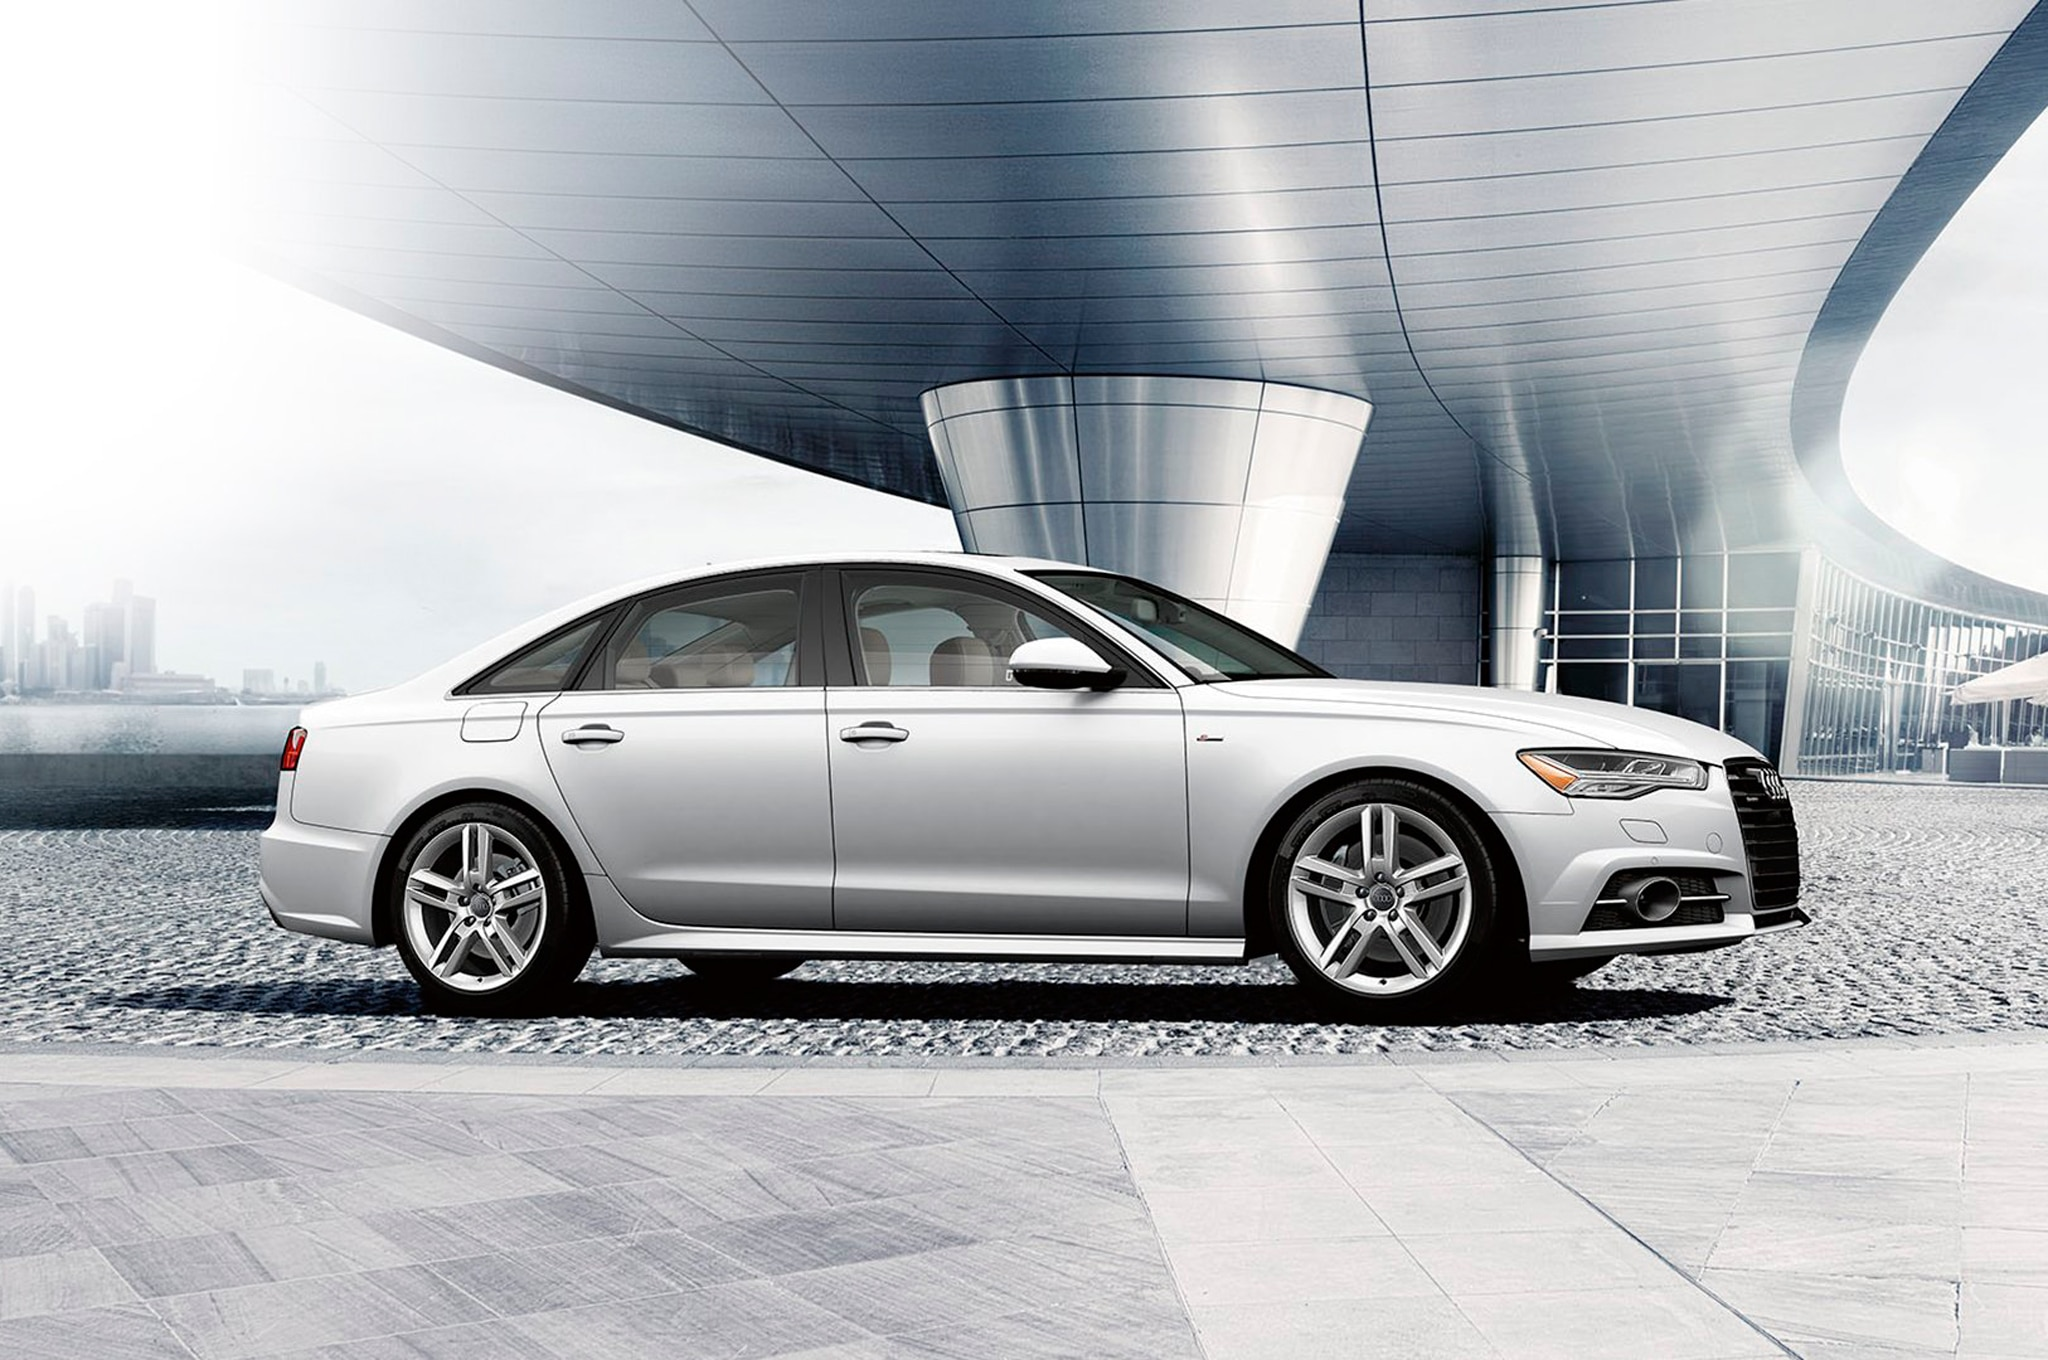 2016 audi a6 and a7 get upgraded engines bound for l a show. Black Bedroom Furniture Sets. Home Design Ideas